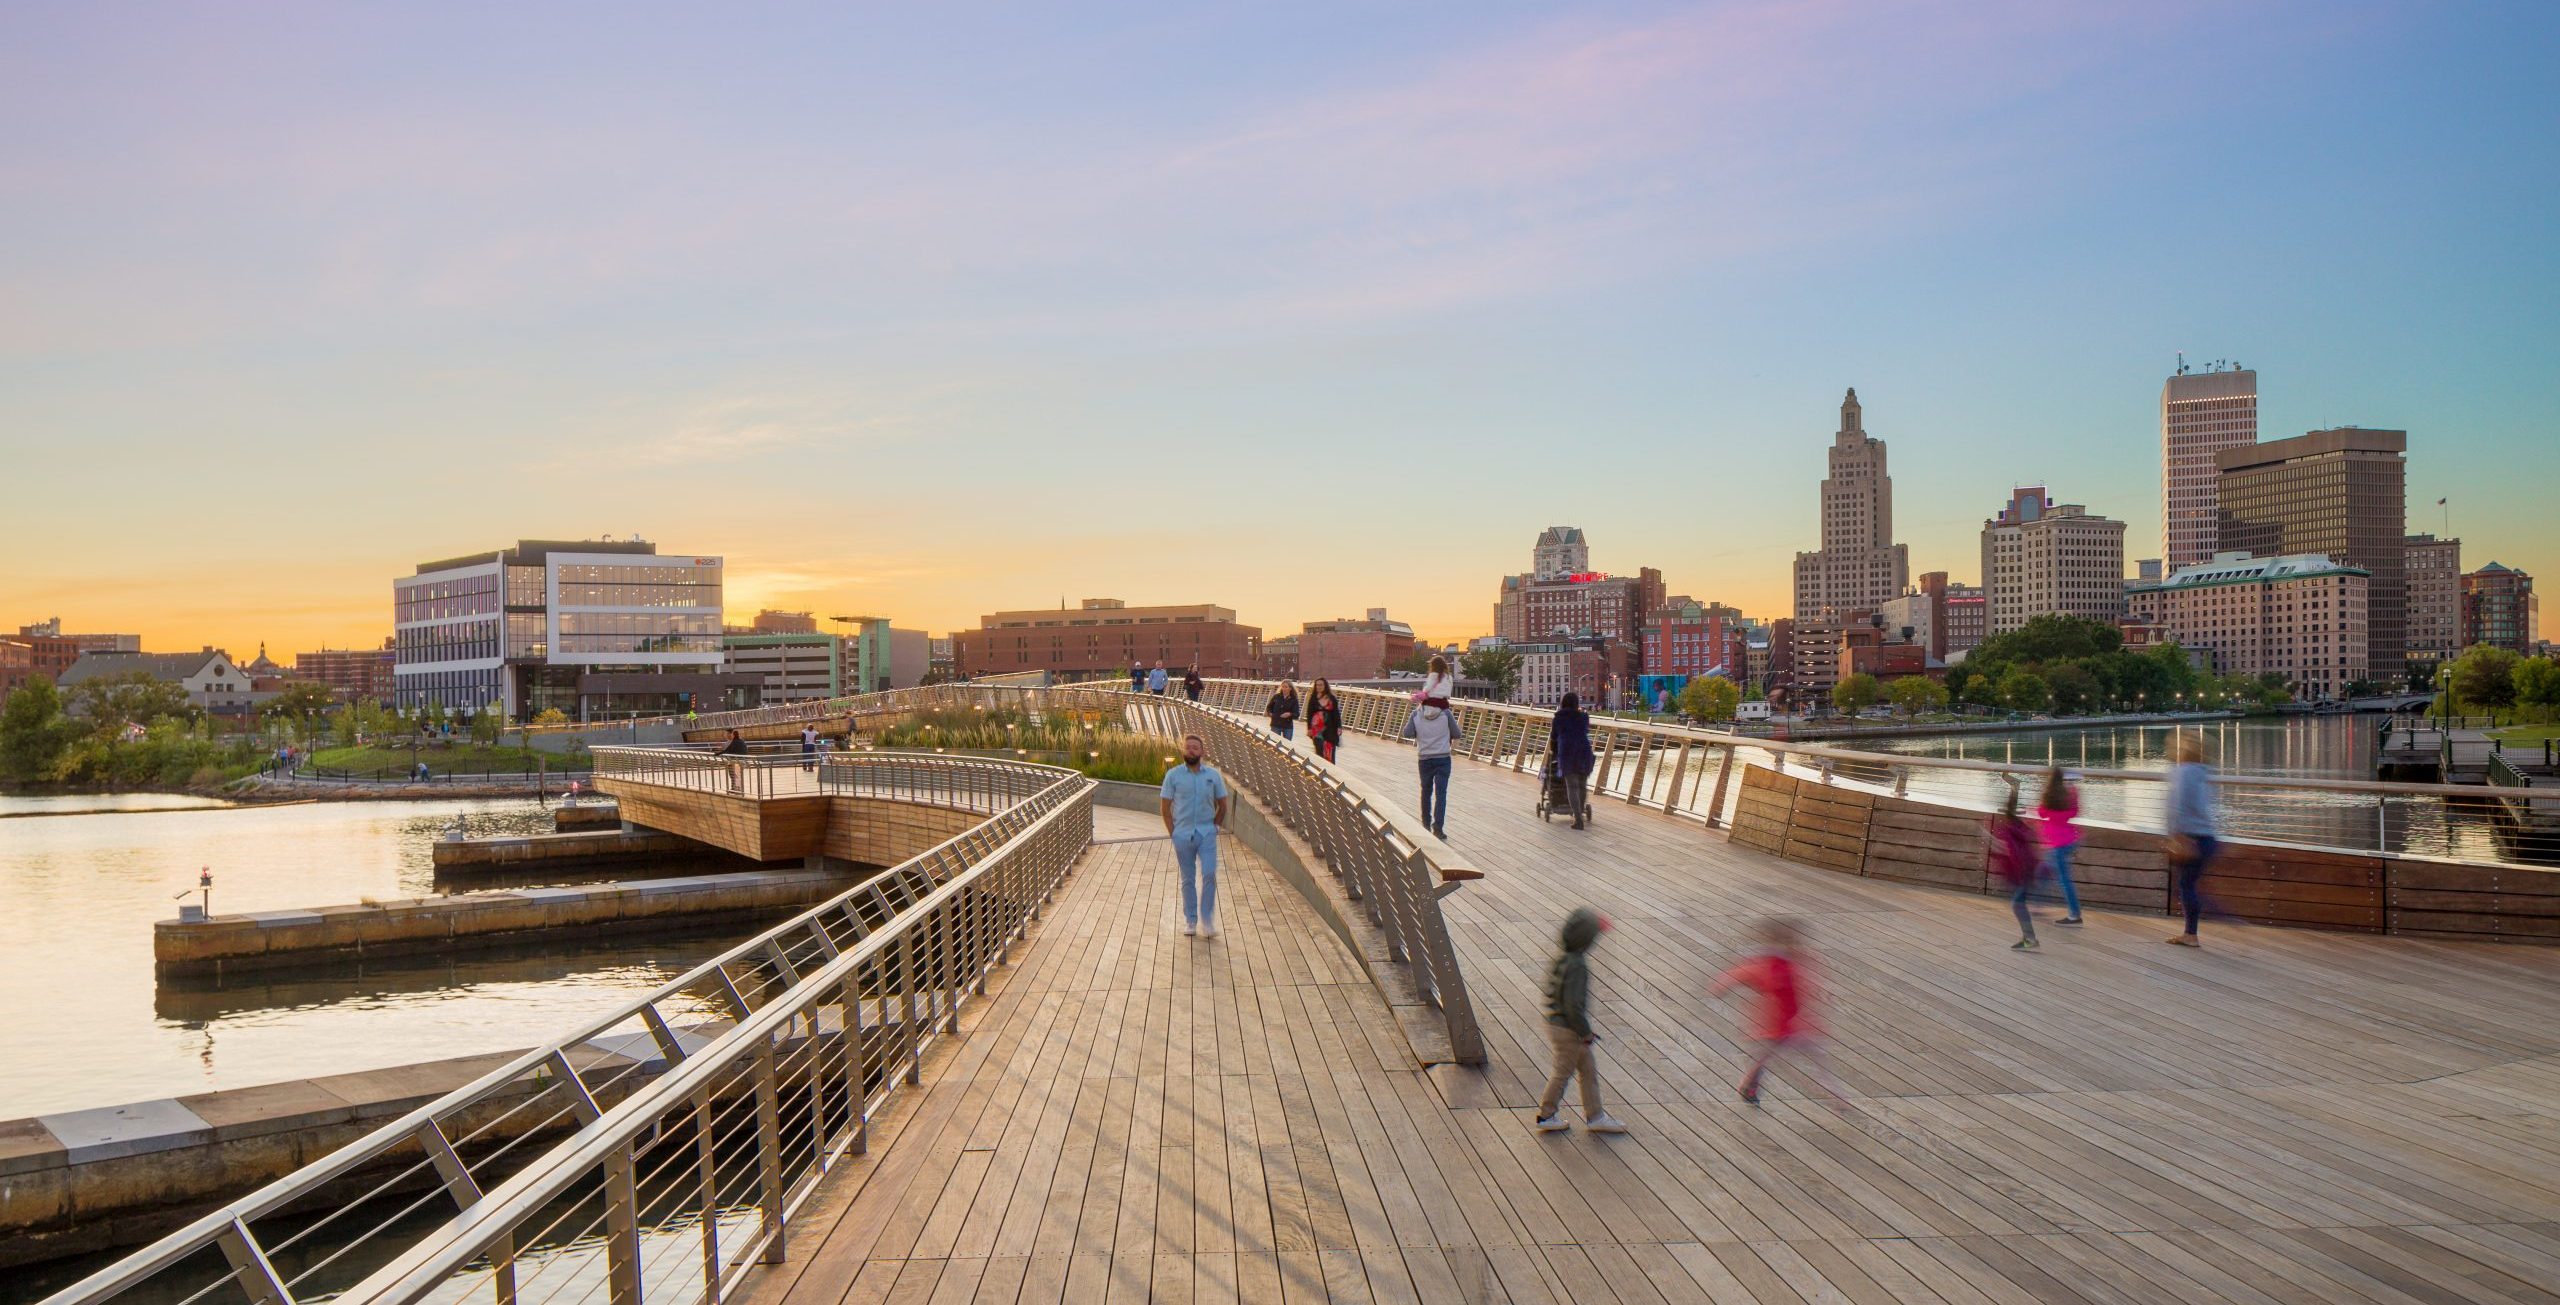 People walking at the entry of Providence River Pedestrian Bridge Project in Rhode Island with downtown skyline in background Urban Design Architecture and Computational Design